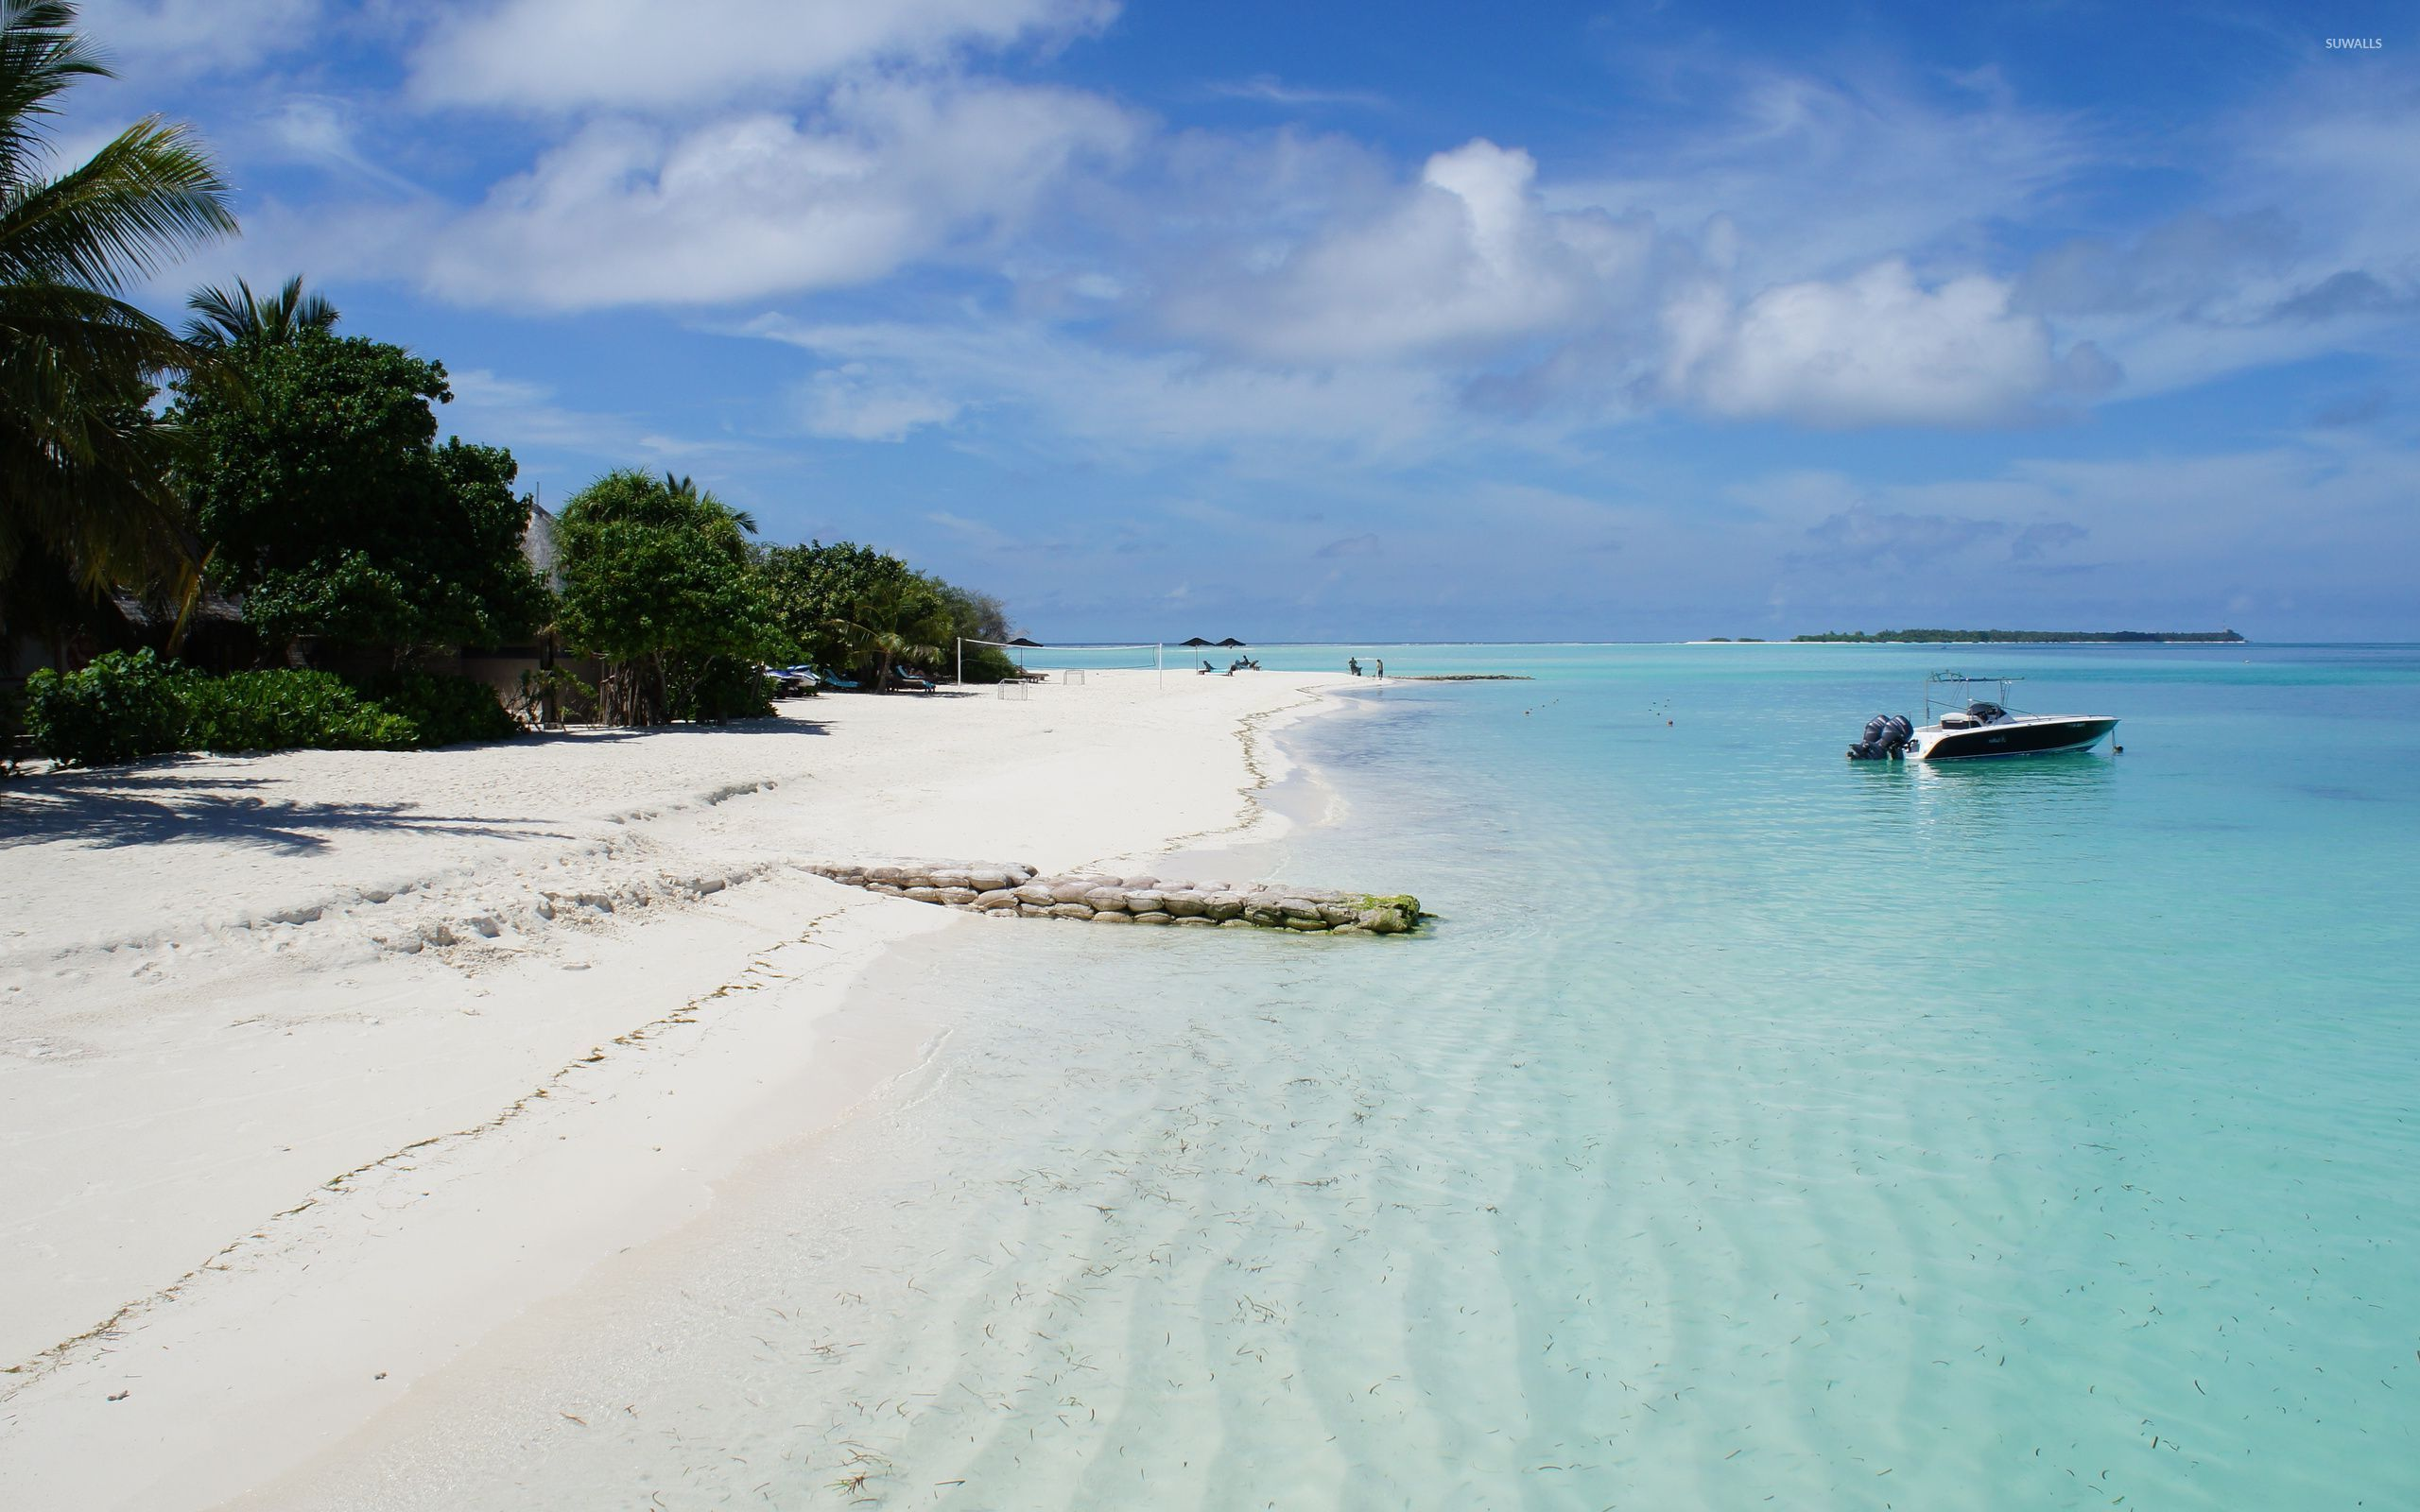 White sand on the shore wallpaper - Beach wallpapers - #54276